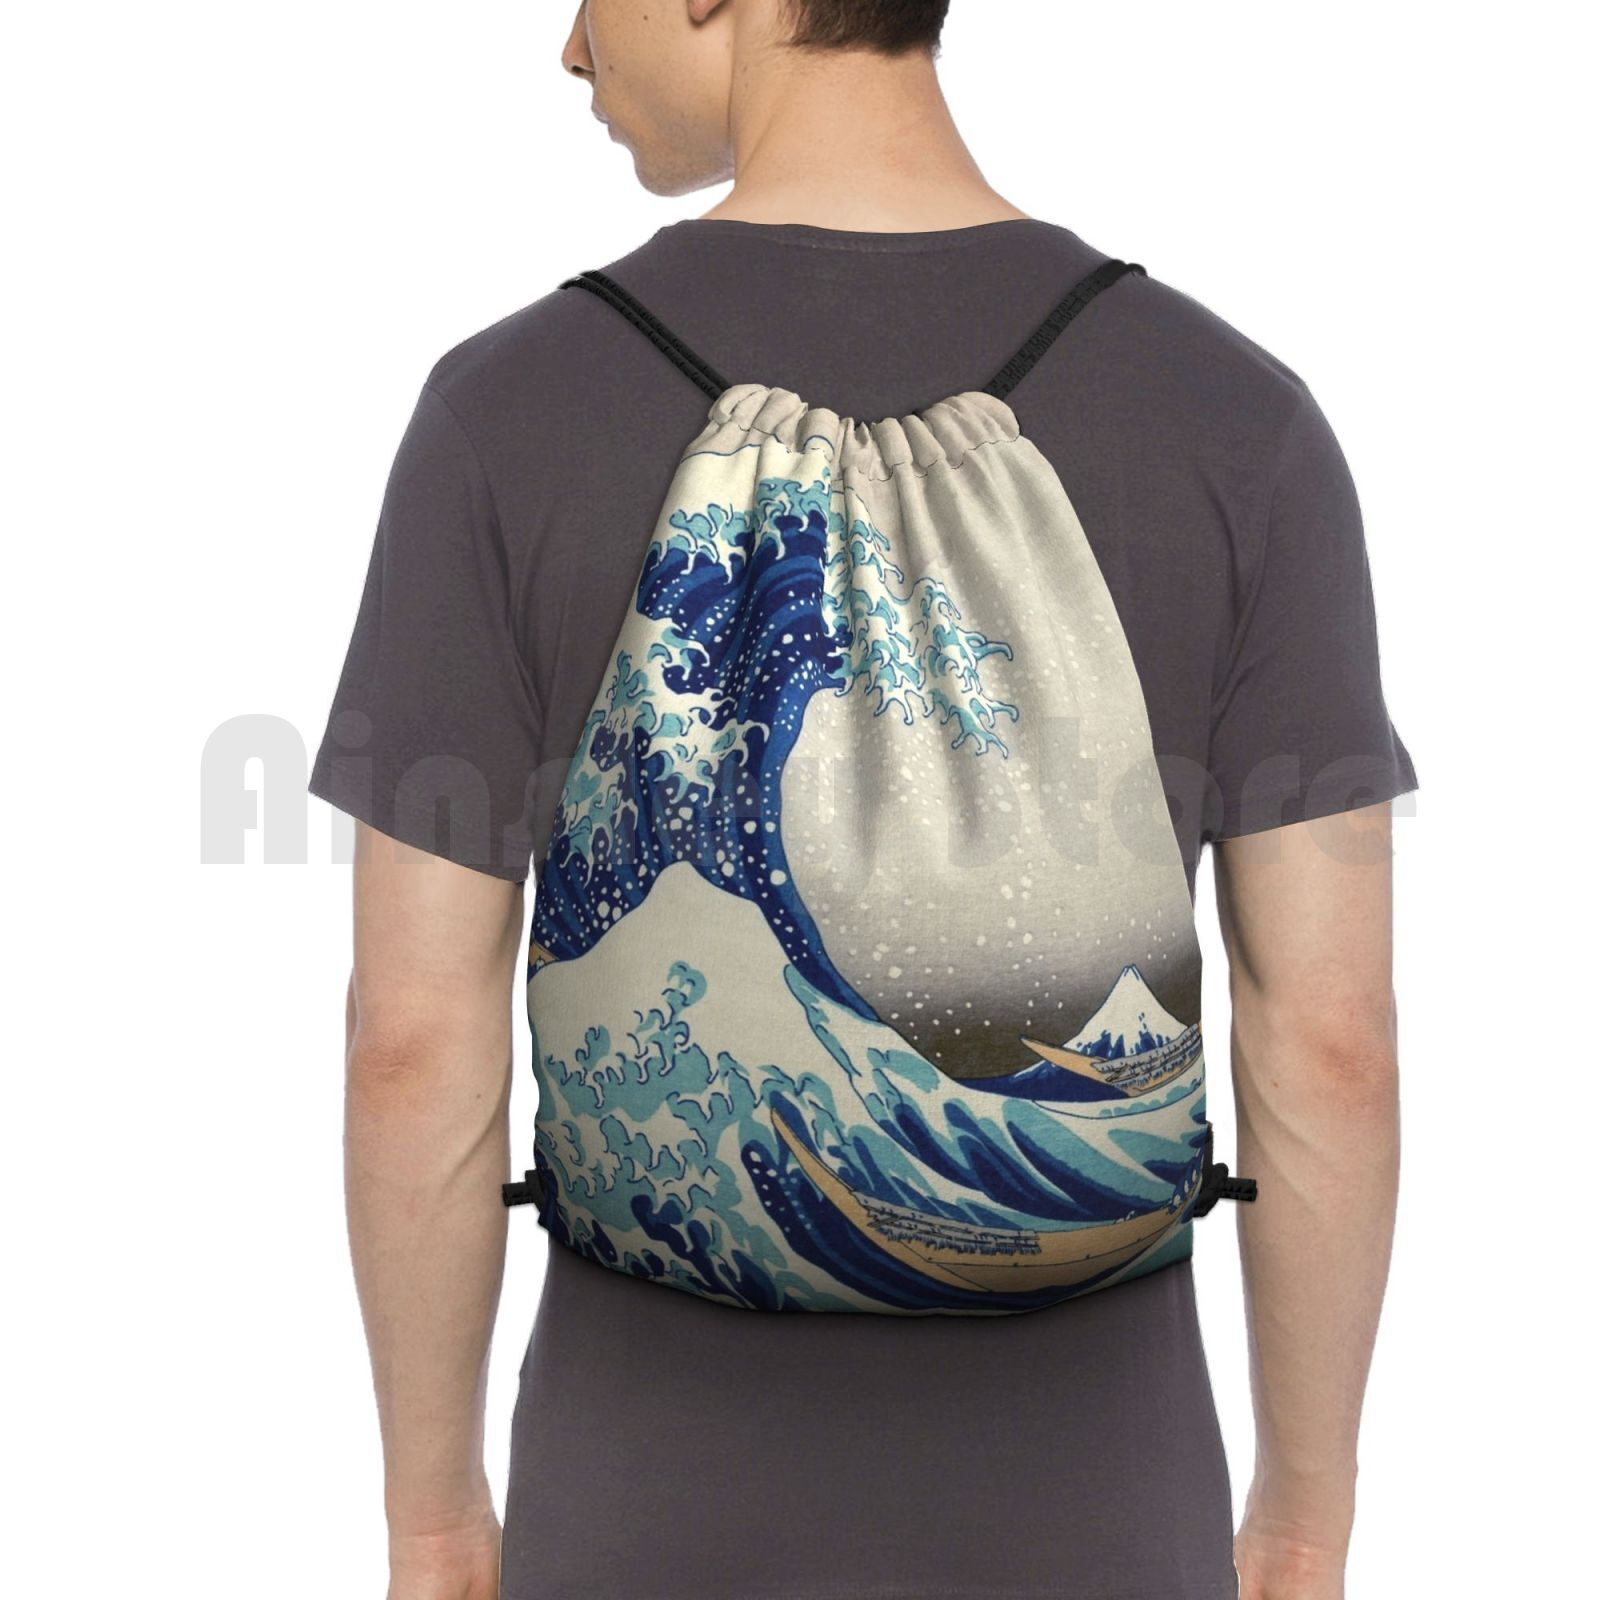 Best Price Magnets-T-Shirts , Prints Etc-Hokusai-The Great Wave Off Kanagawa-1823 Outdoor Hiking Backpack Waterproof Camping